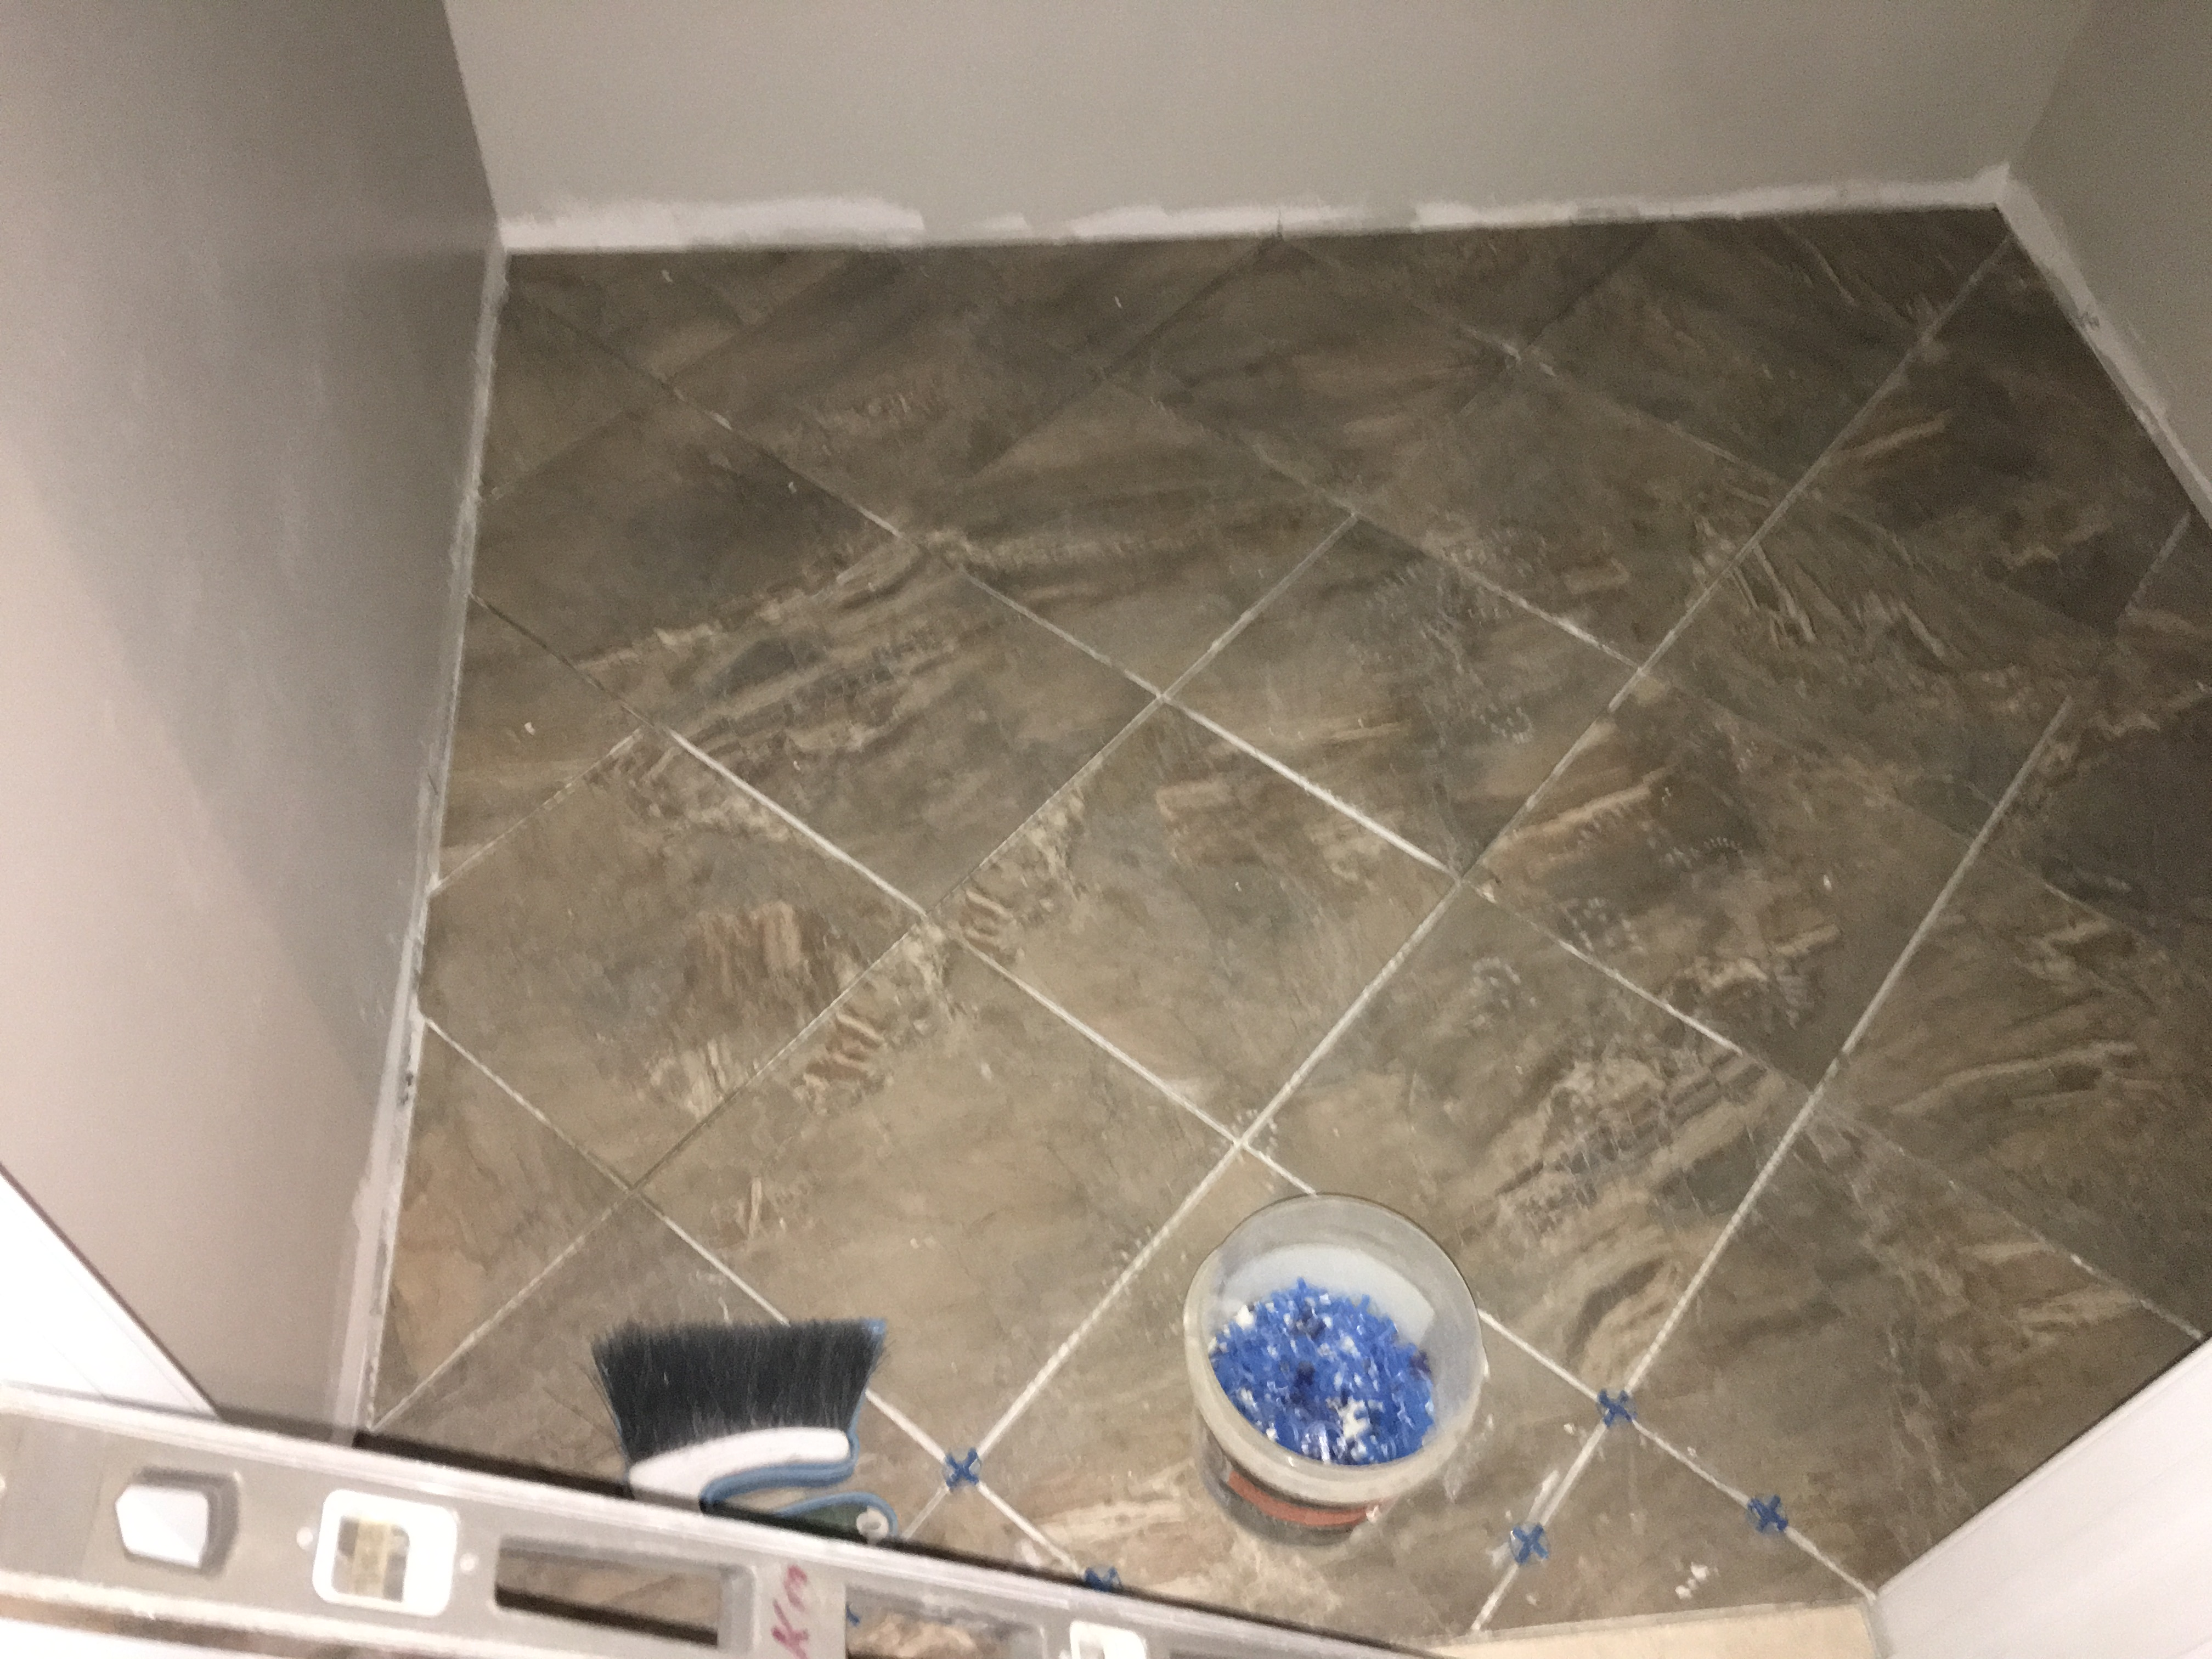 What tile project are you working on?-e15f2f96-19c5-4876-b28a-1bace145d23b.jpeg